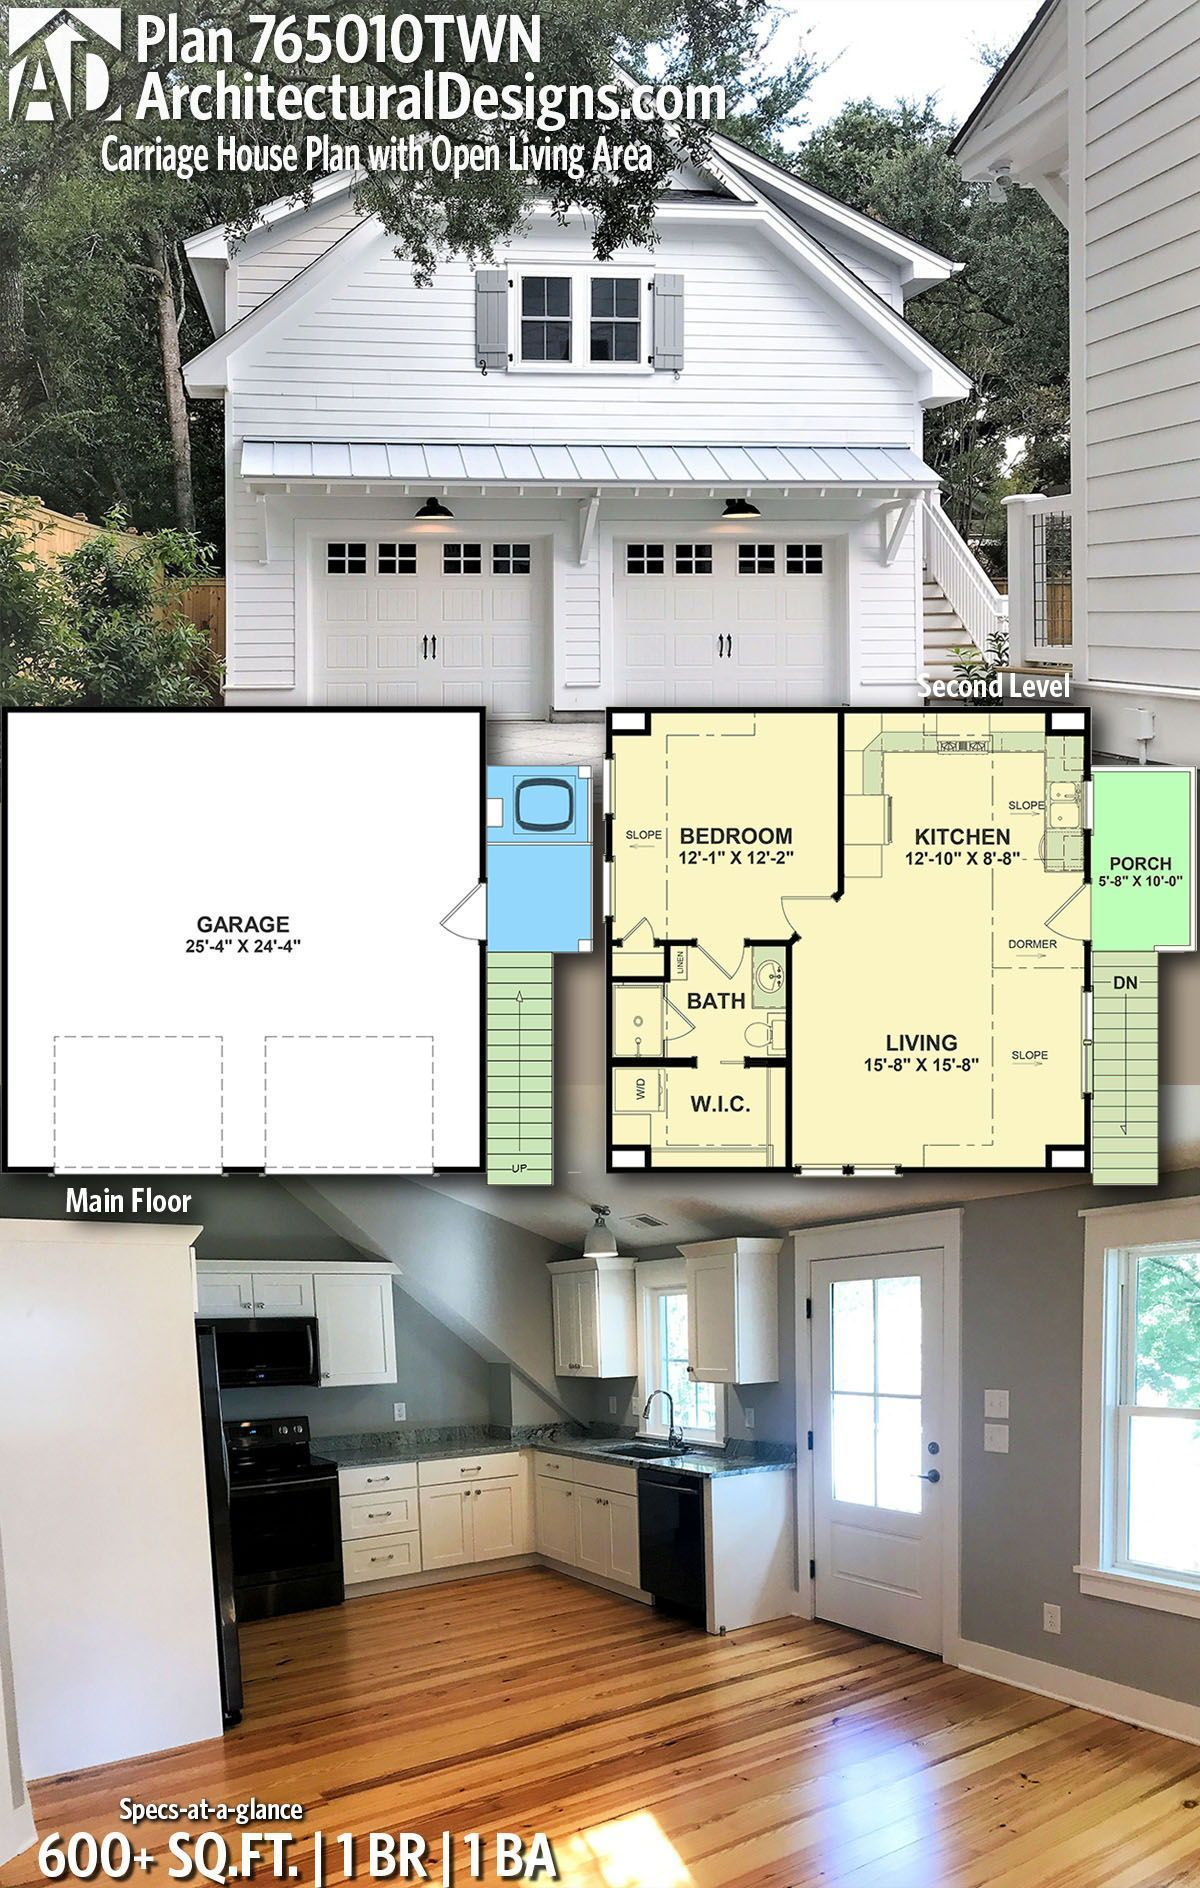 Garage Plan 765010twn Gives You 1 Bedrooms 1 Baths And 600 Sq Ft Ready When In 2020 Carriage House Plans Carriage House Plans Garage Apartments Garage Guest House